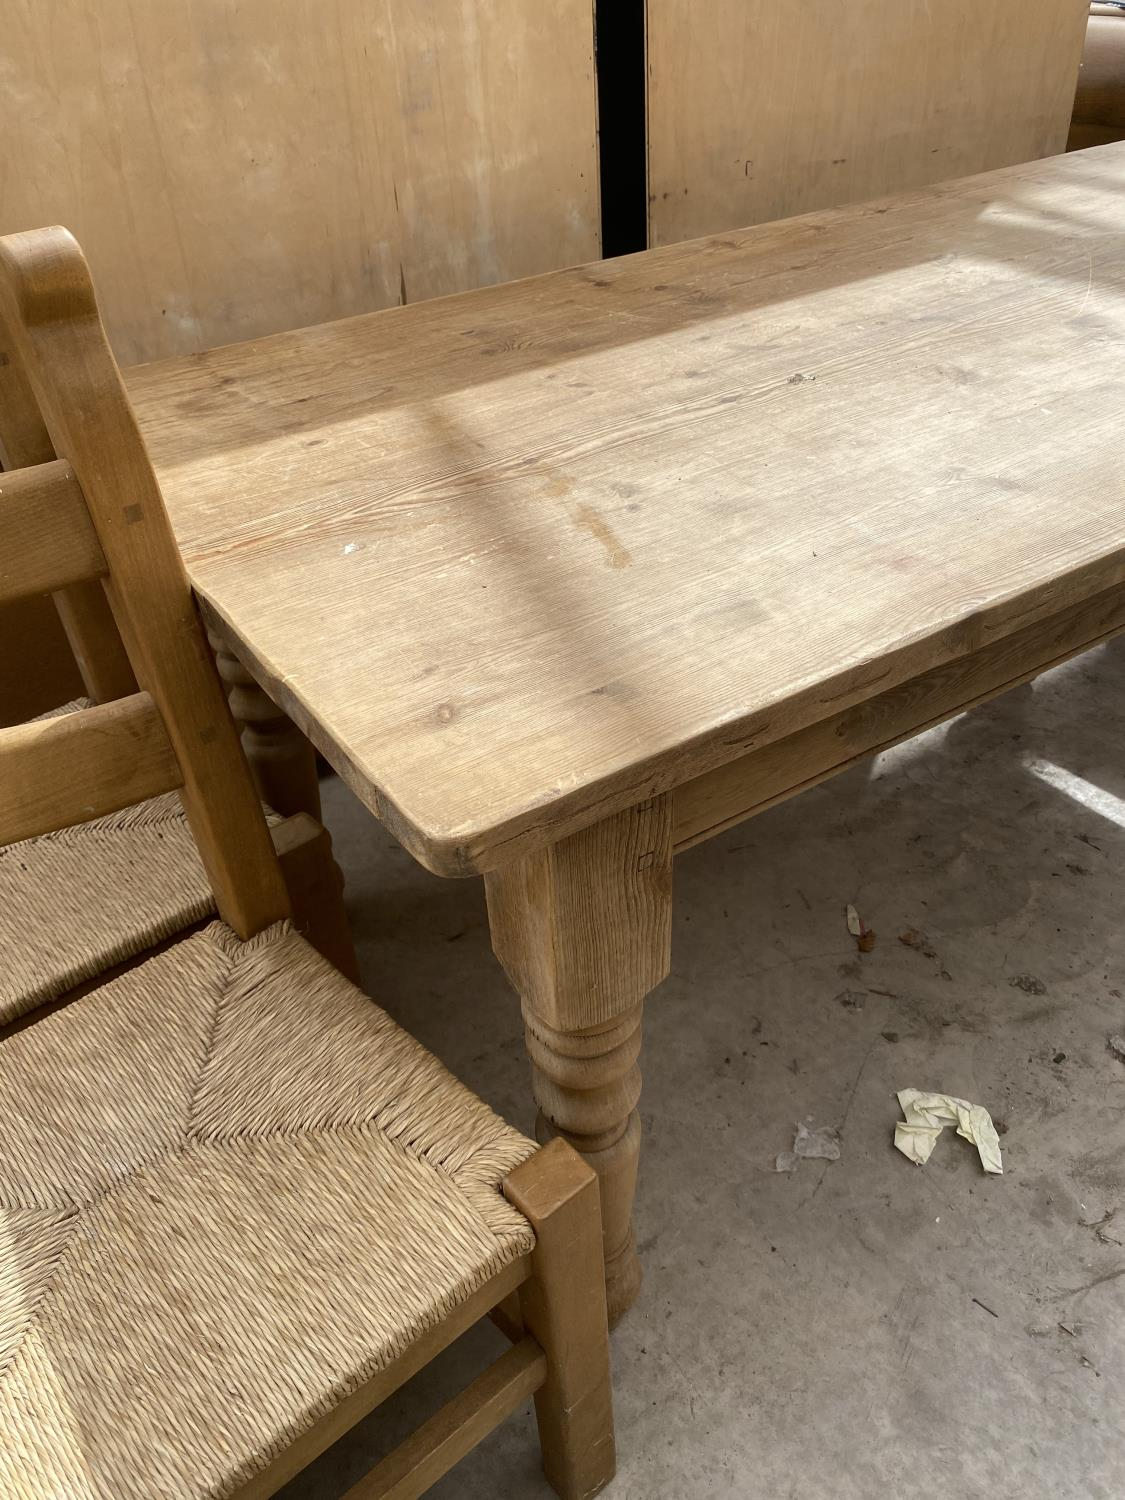 """A VICTORIAN STYLE PINE KITCHEN TABLE ON TURNED LEGS, 72X35.5"""" - Image 2 of 4"""